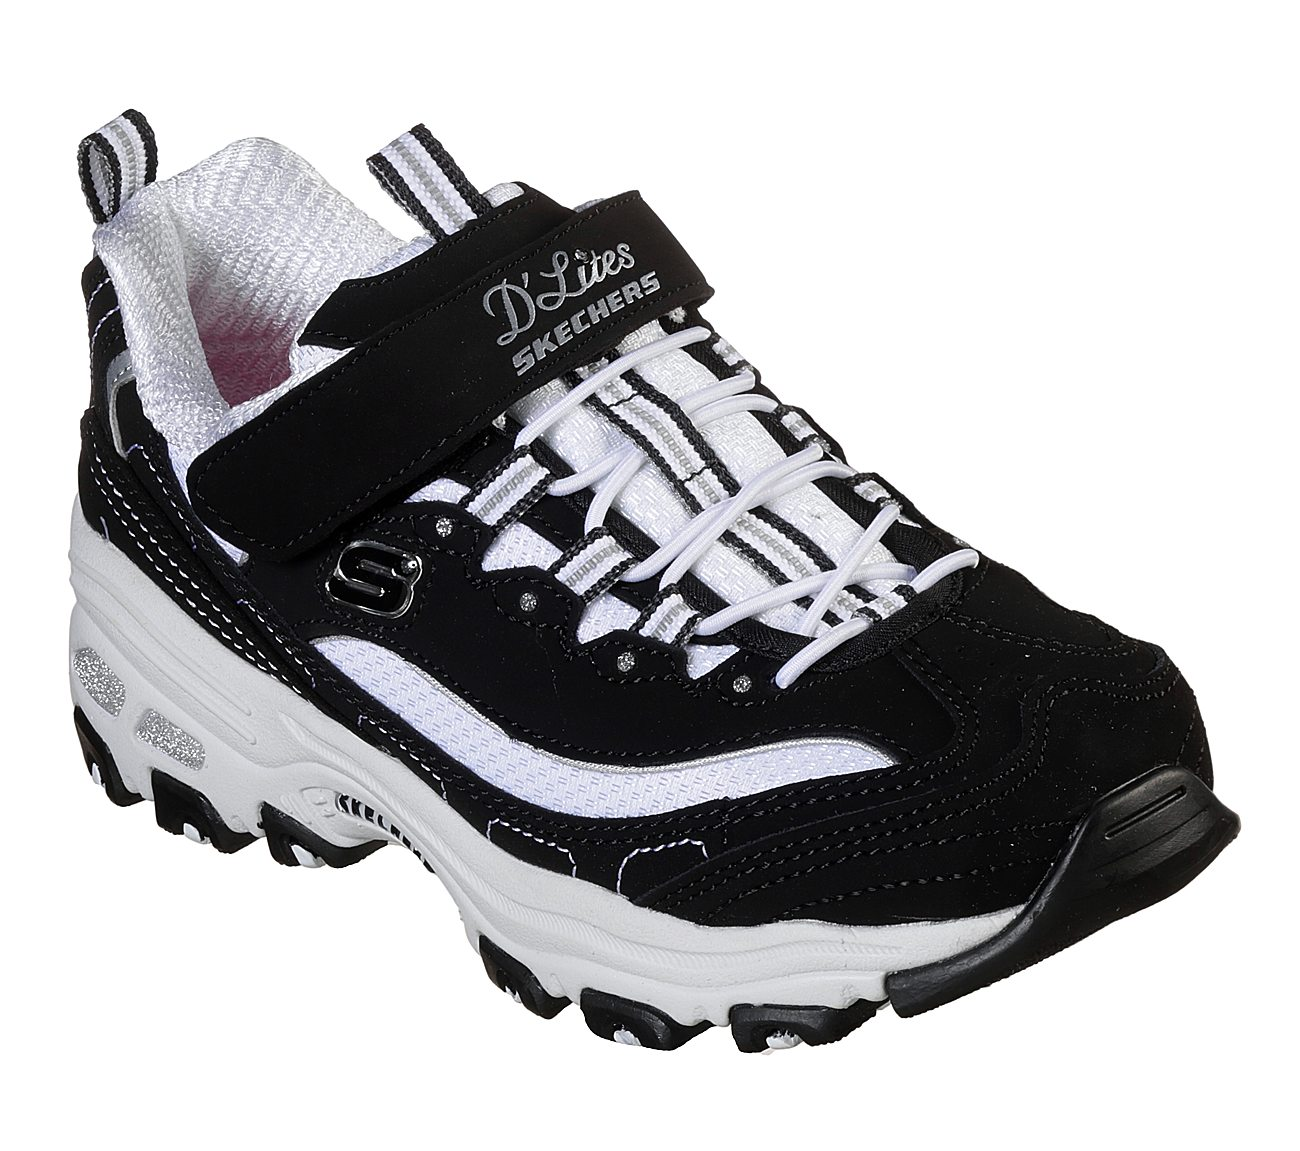 Skechers sneakers shoes with leather straps and Off White